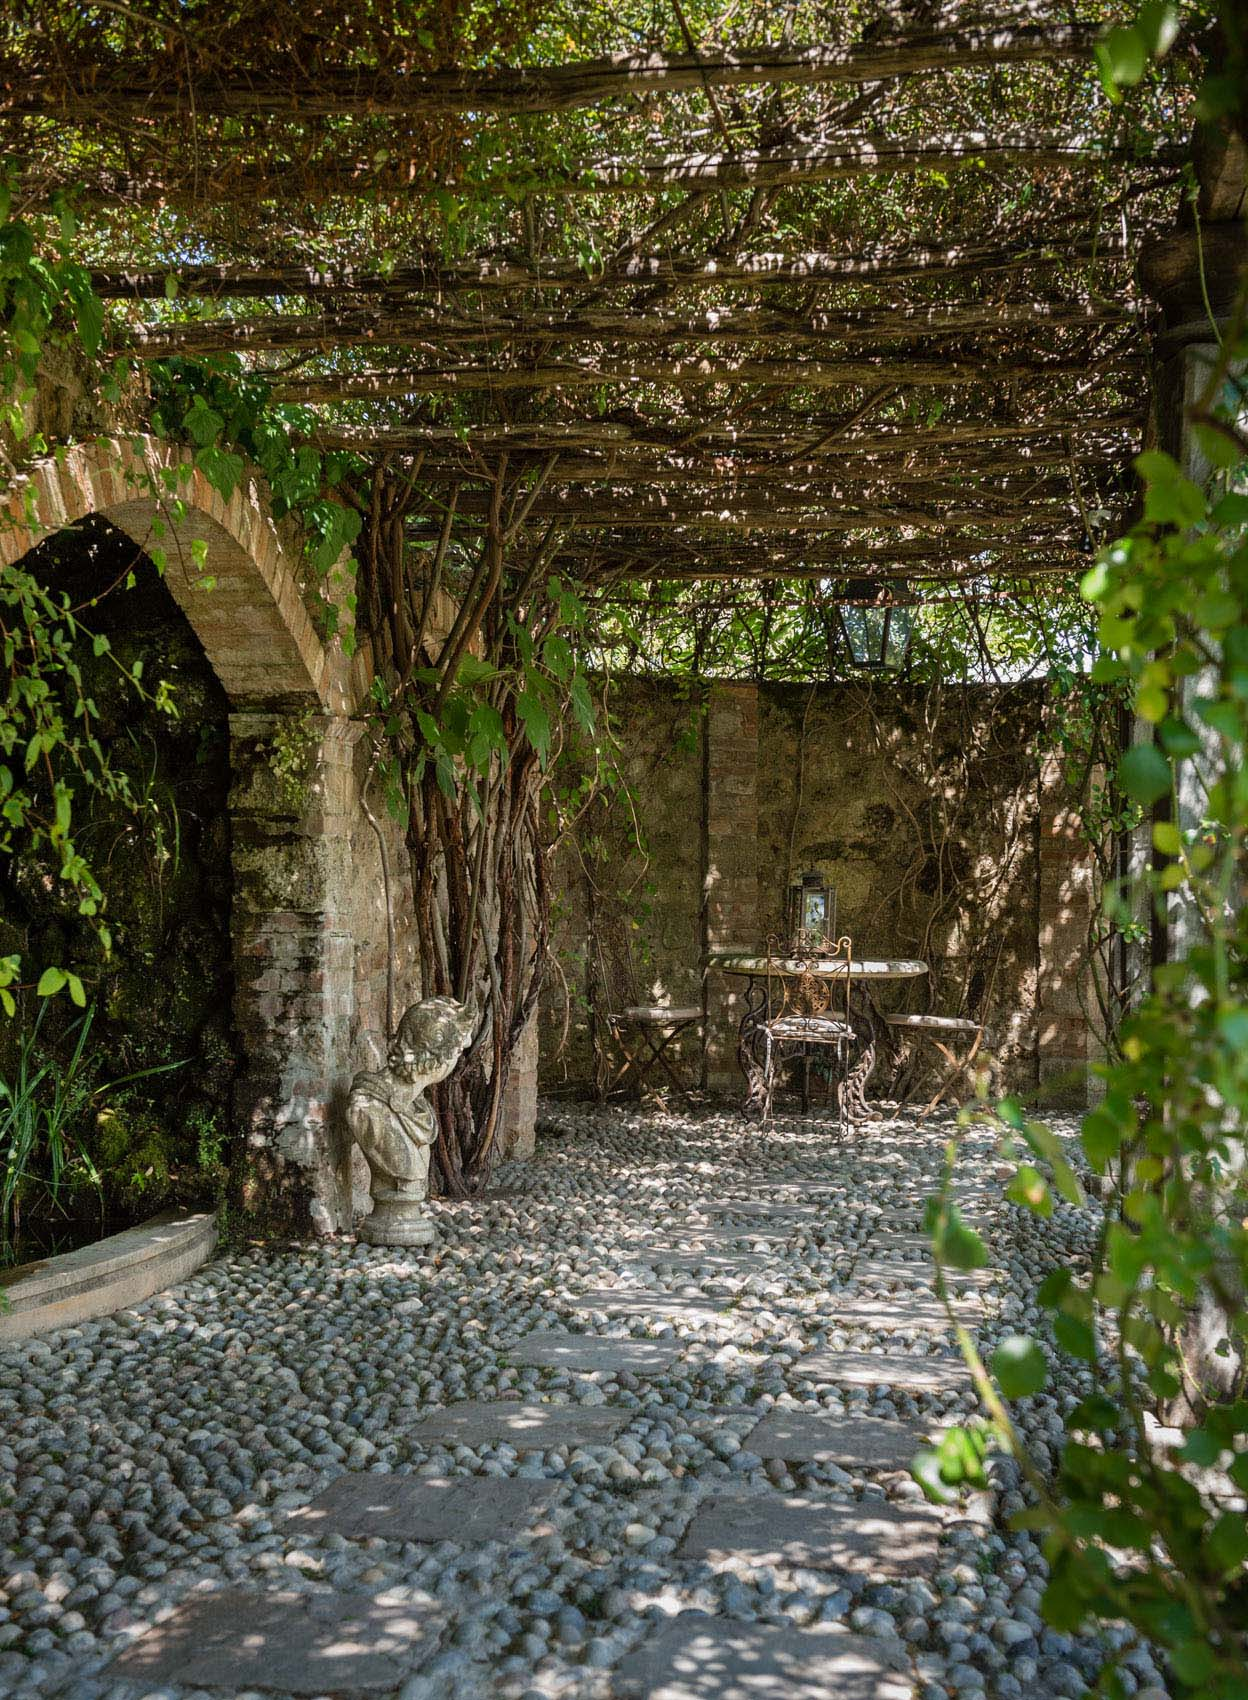 O18-655 Paved walkway at Borgo Santo Pietro, Tuscany